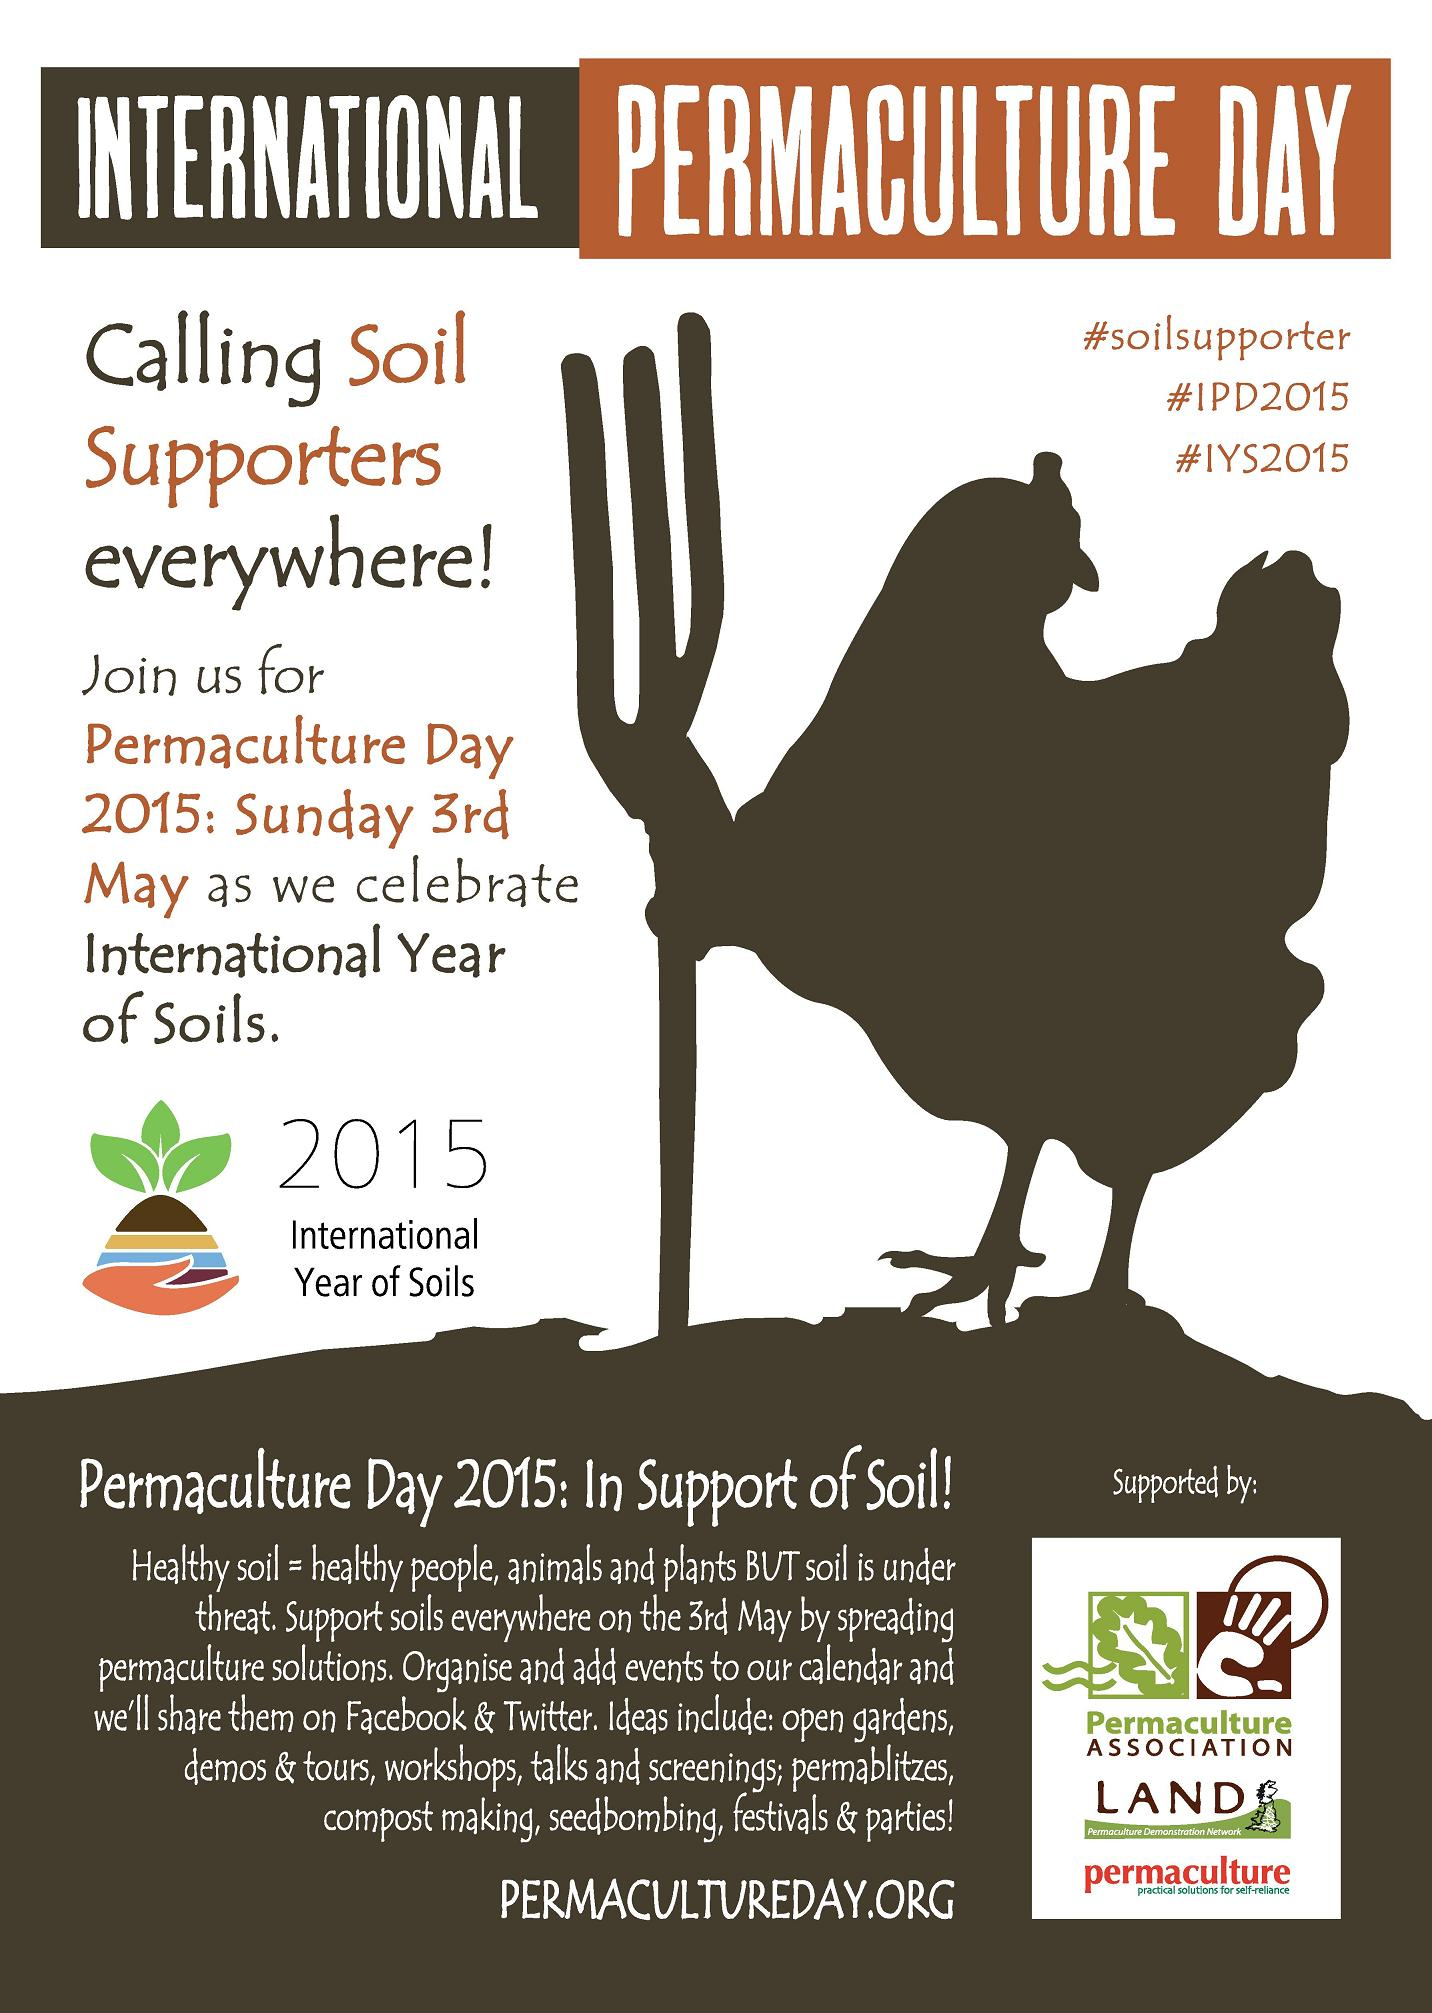 International Permaculture Day - Worldwide